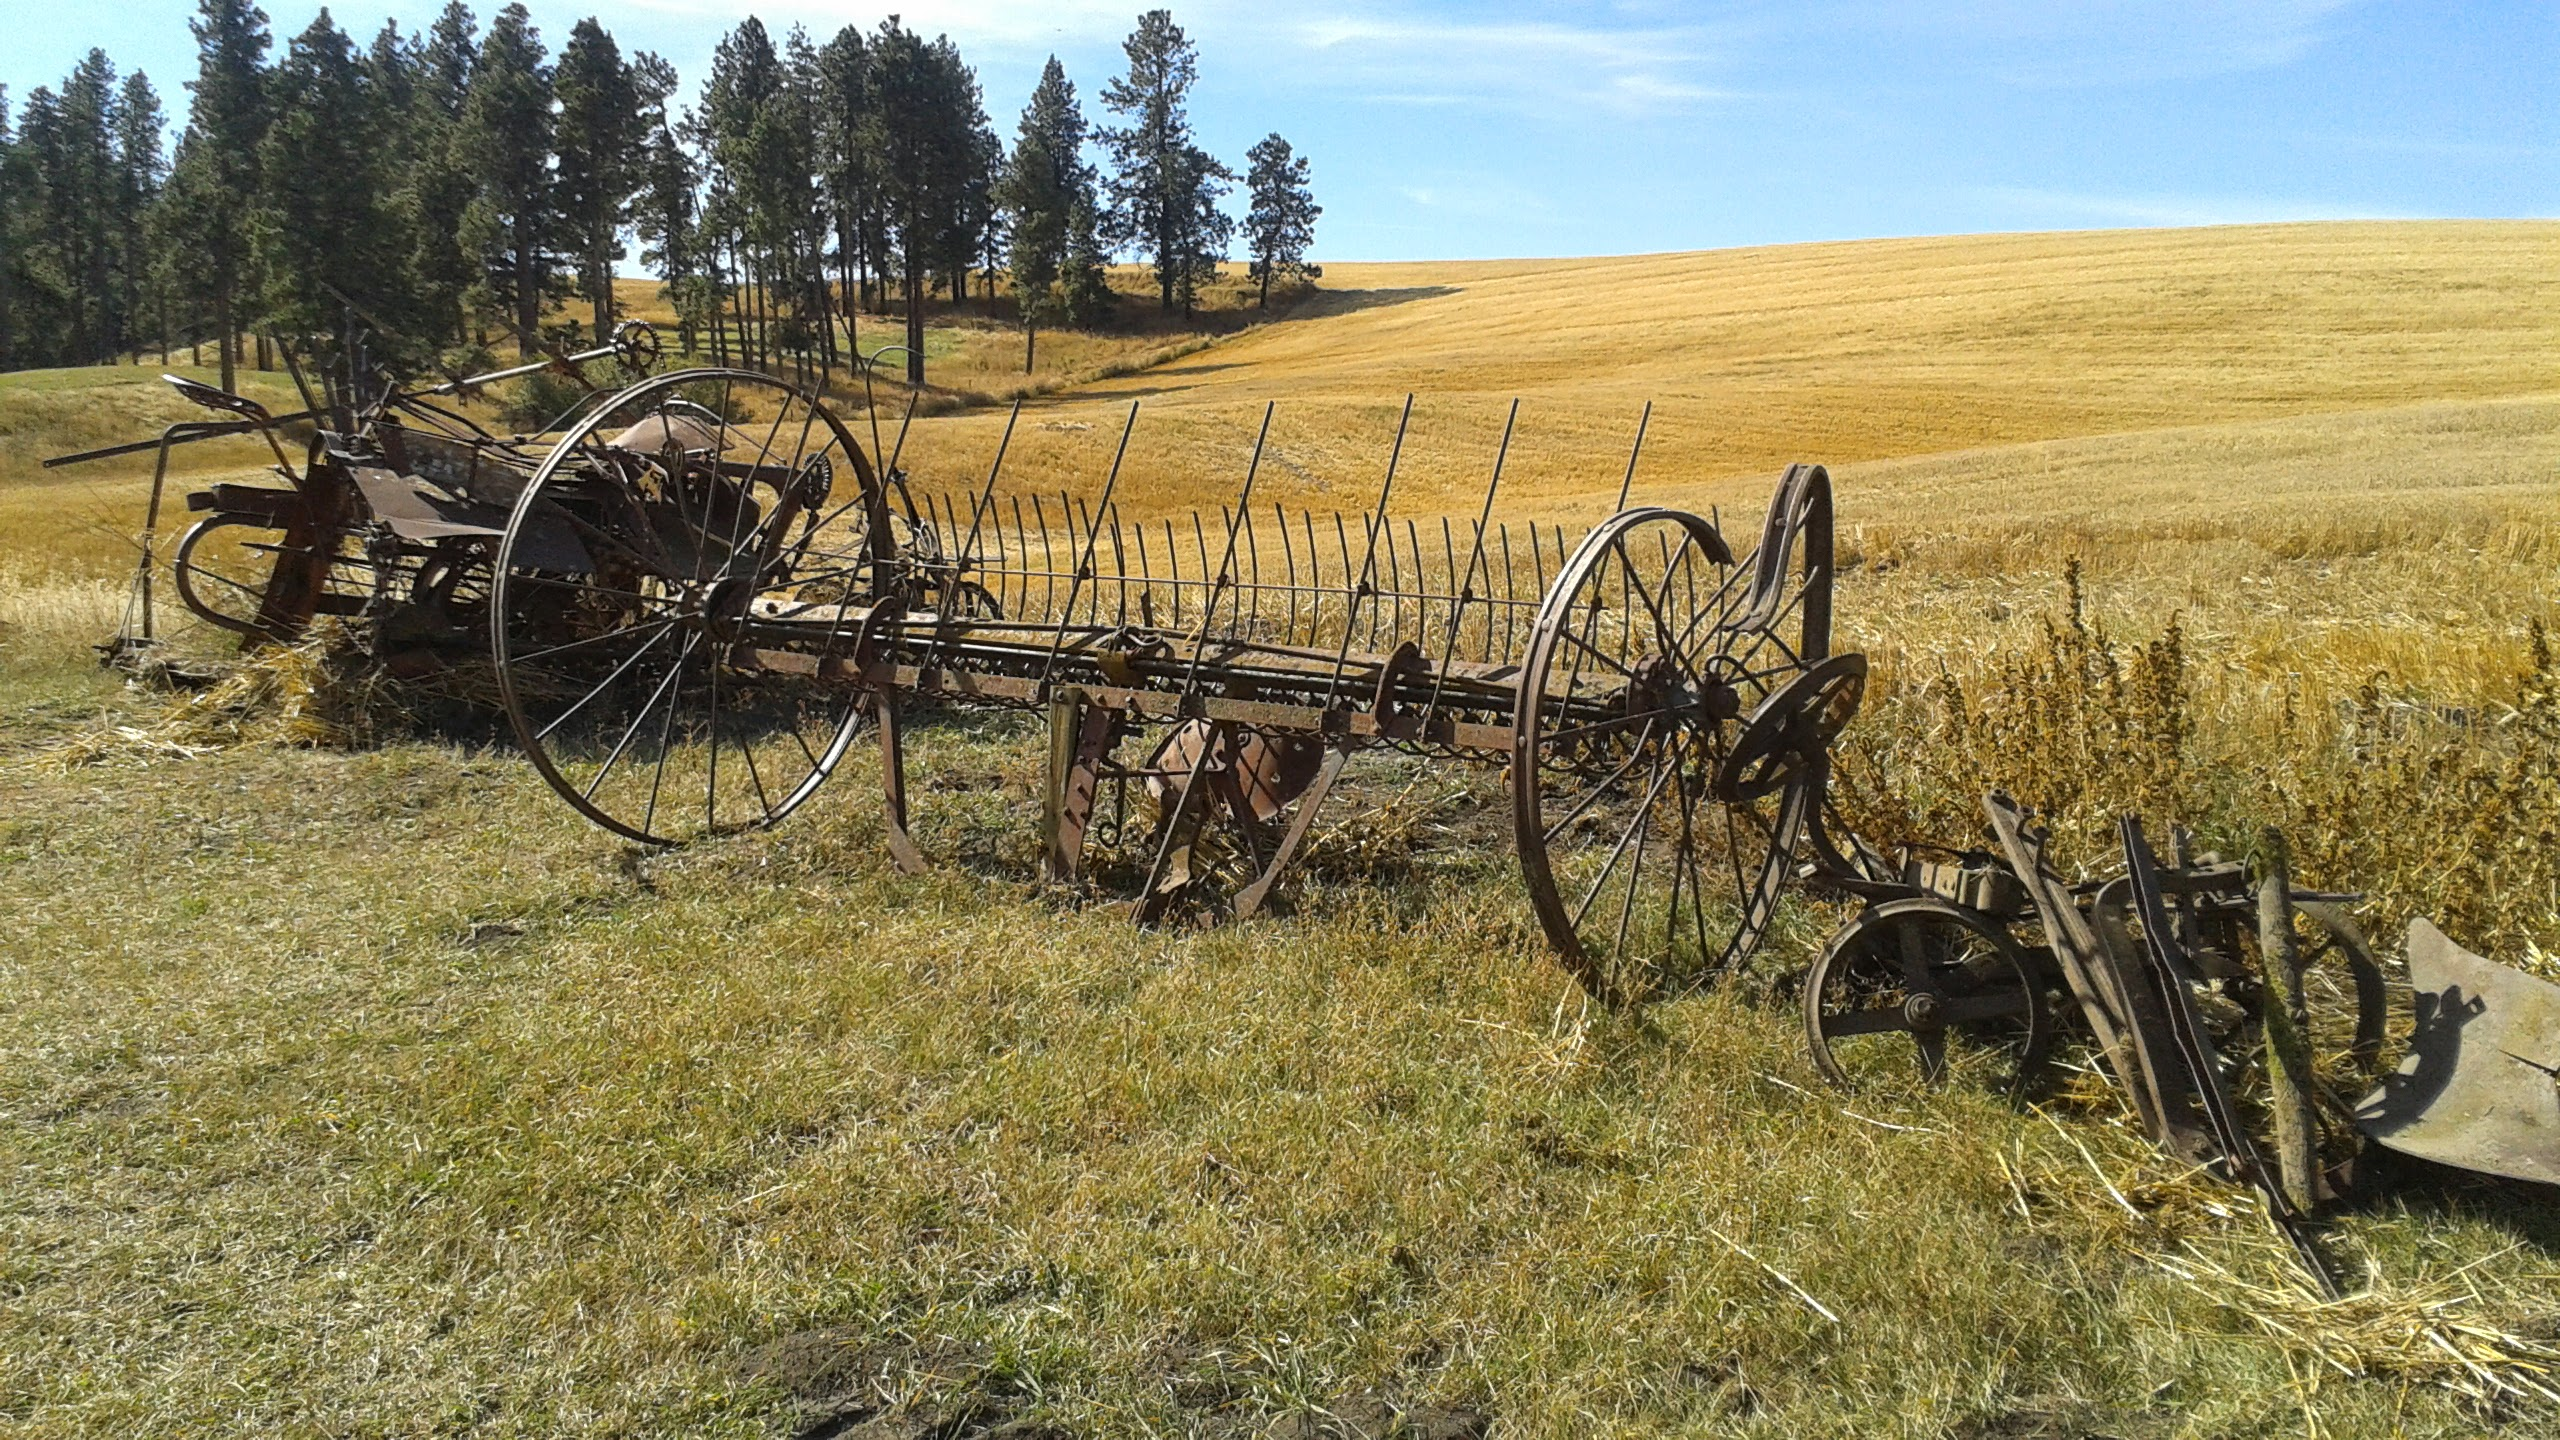 Cemetery of old farm equipment | Inland 360